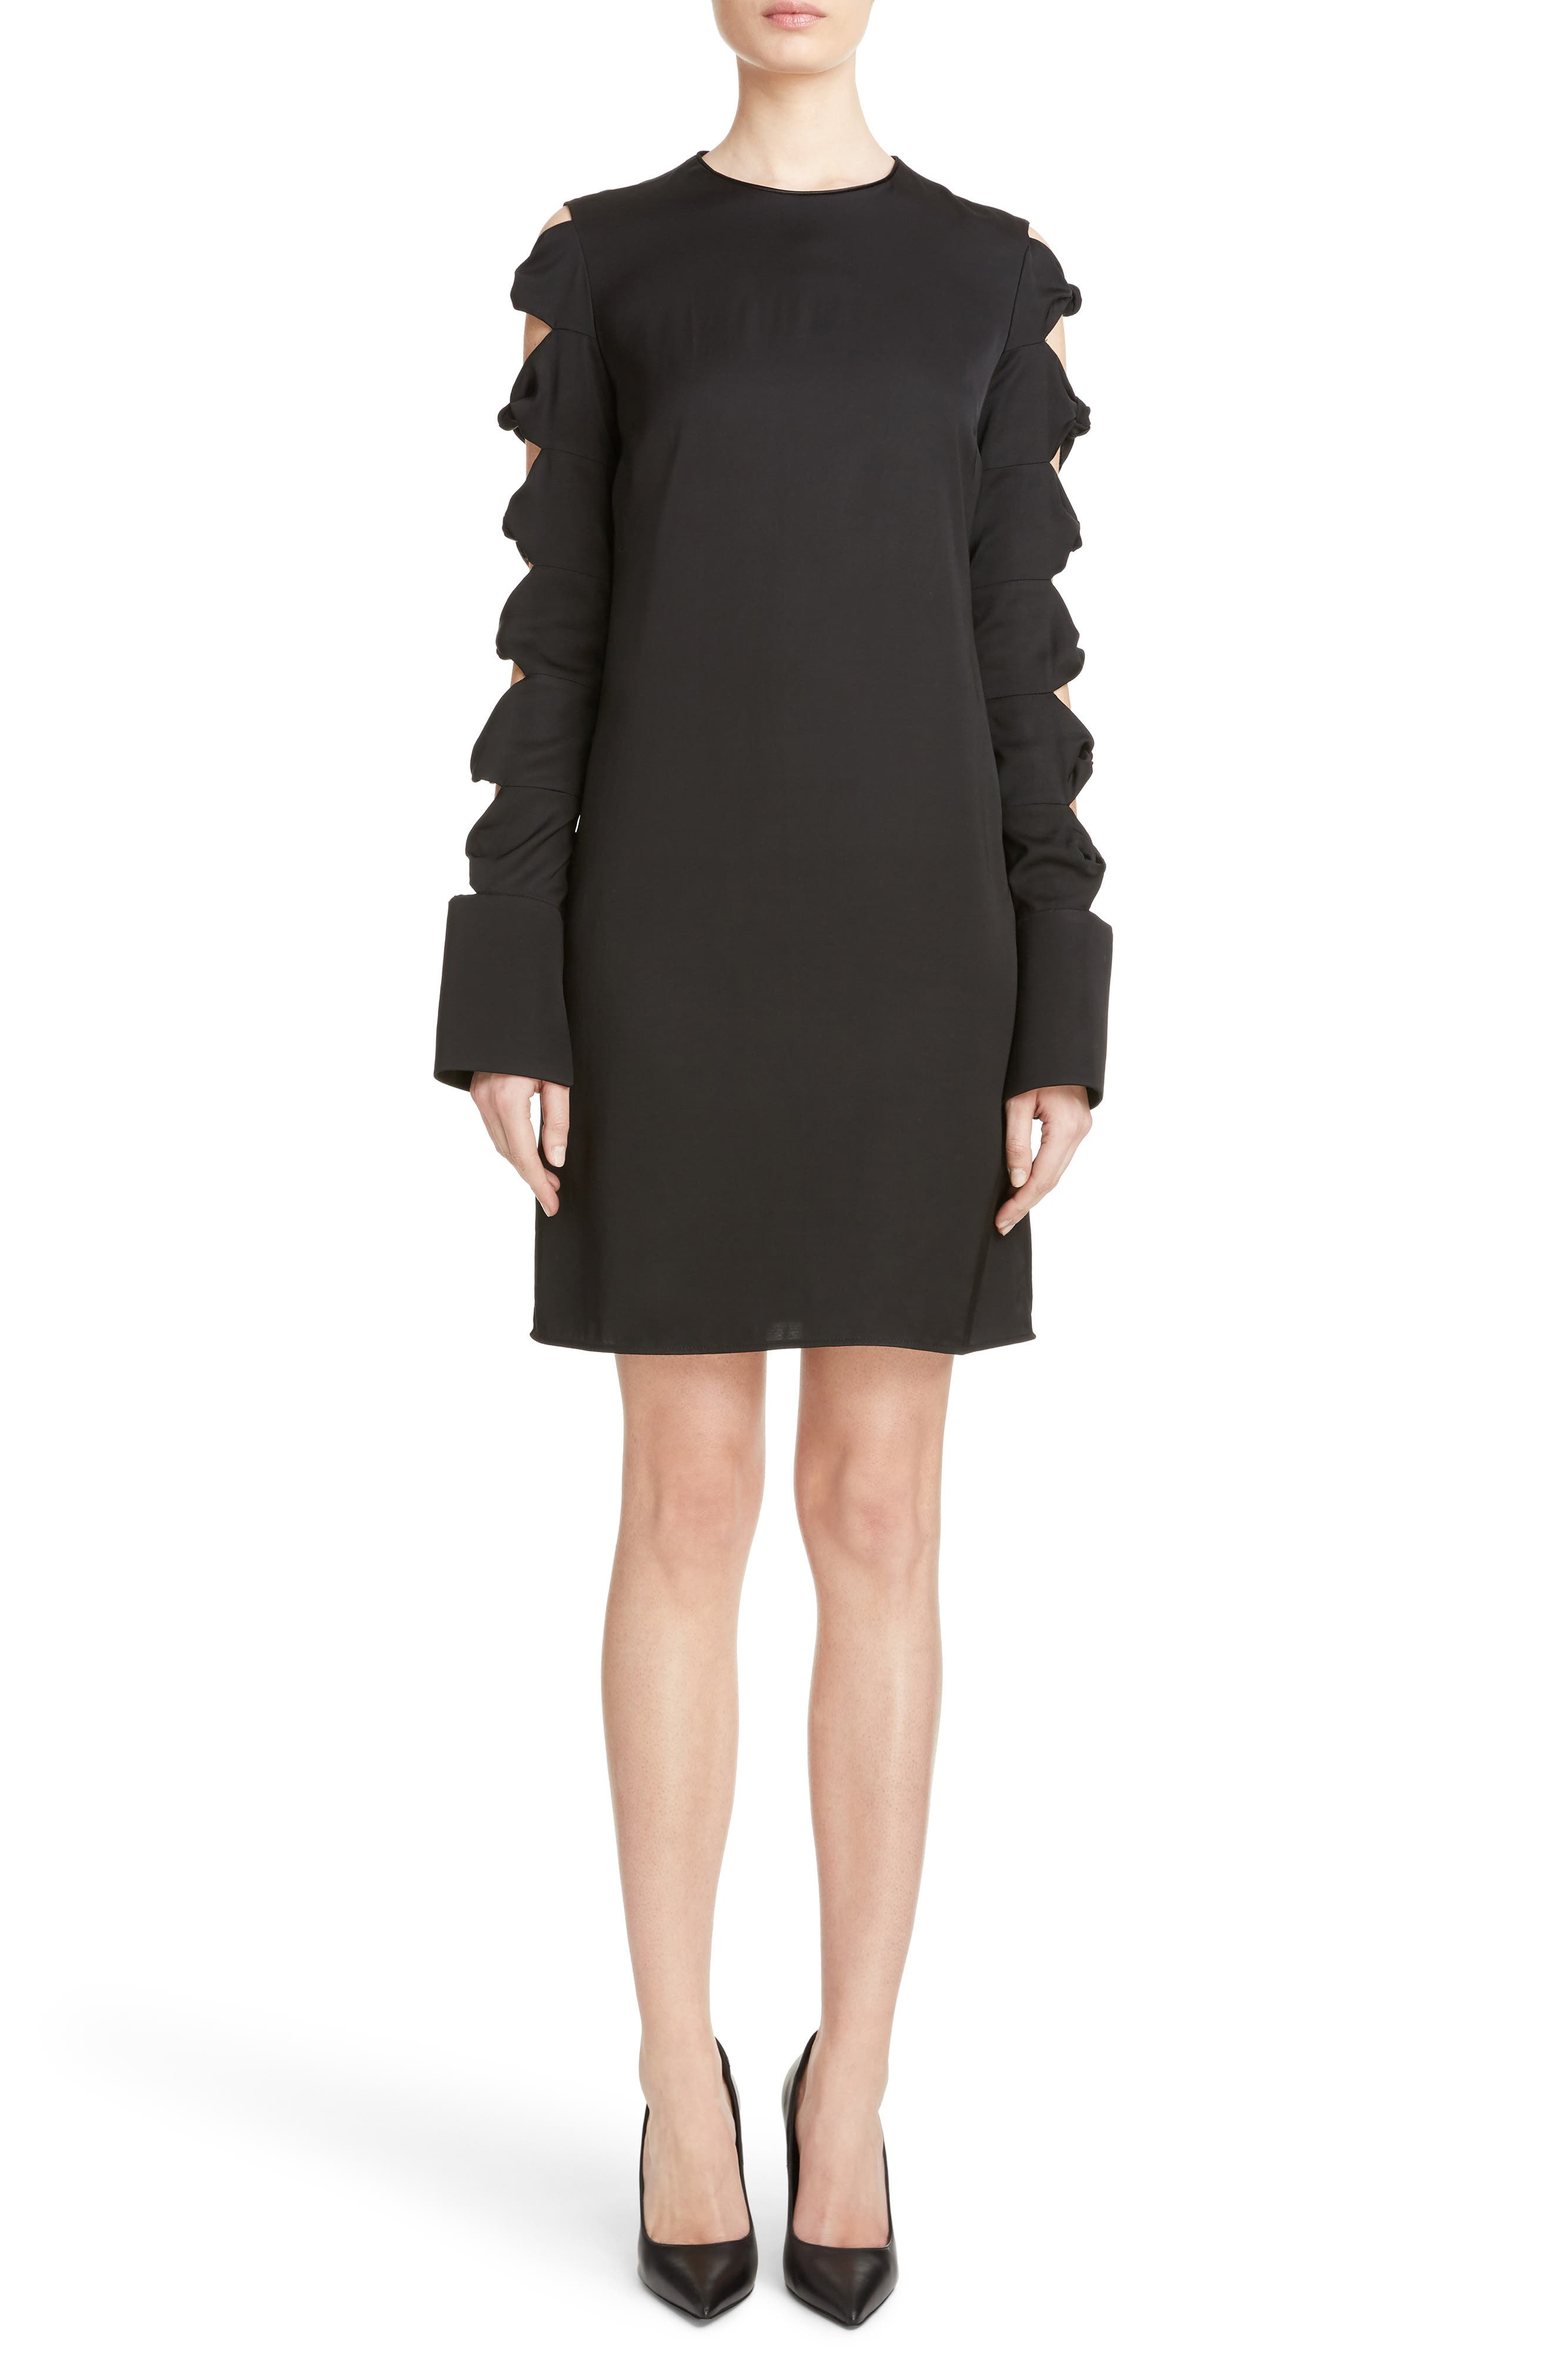 Knotted Sleeve Dress,                         Main,                         color, 001